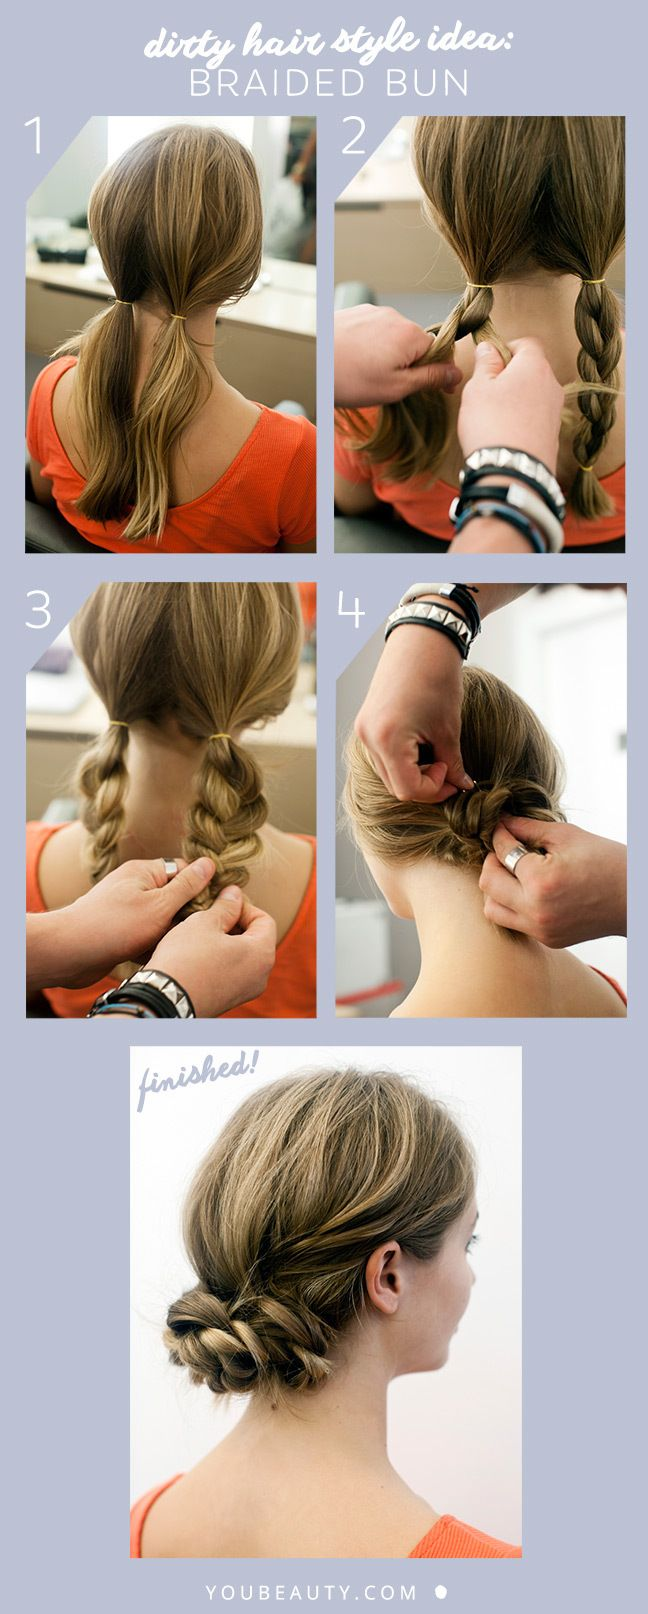 Cute, even for bad hair days! Braided Bun